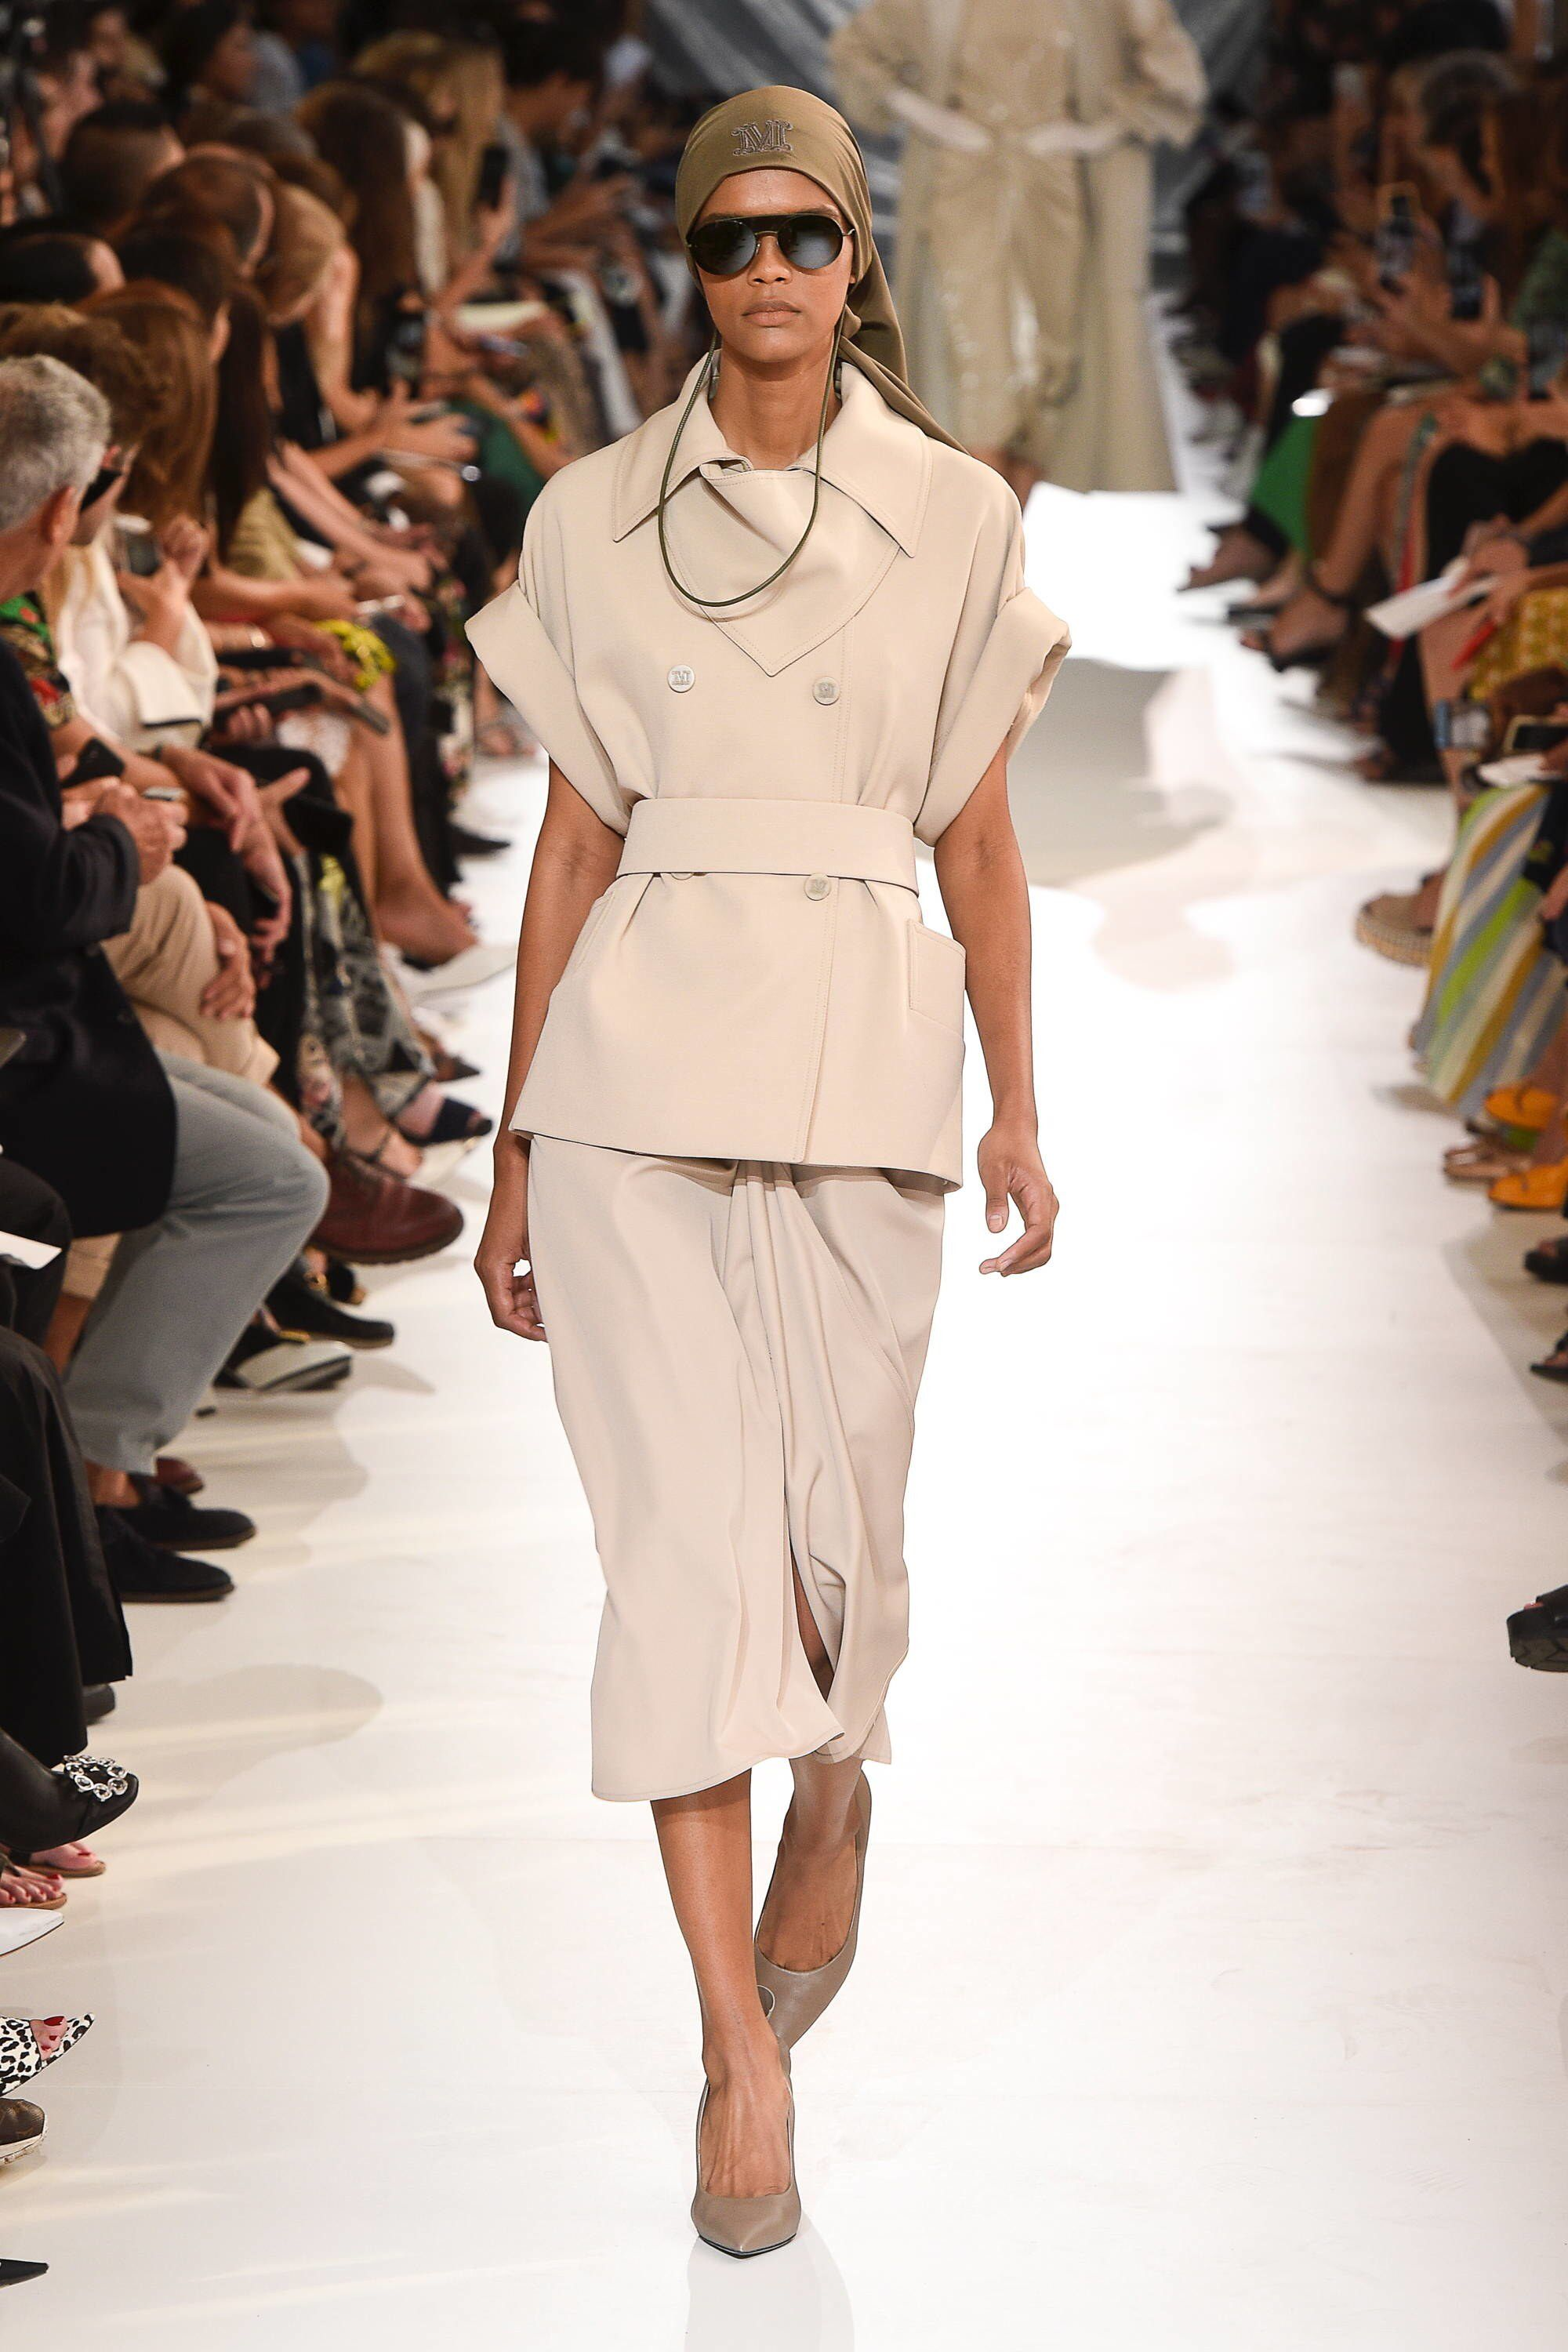 Max Mara Spring 2019 Ready-to-Wear Fashion Show Collection  See the  complete Max Mara Spring 2019 Ready-to-Wear collection. Look 11 6542da24075